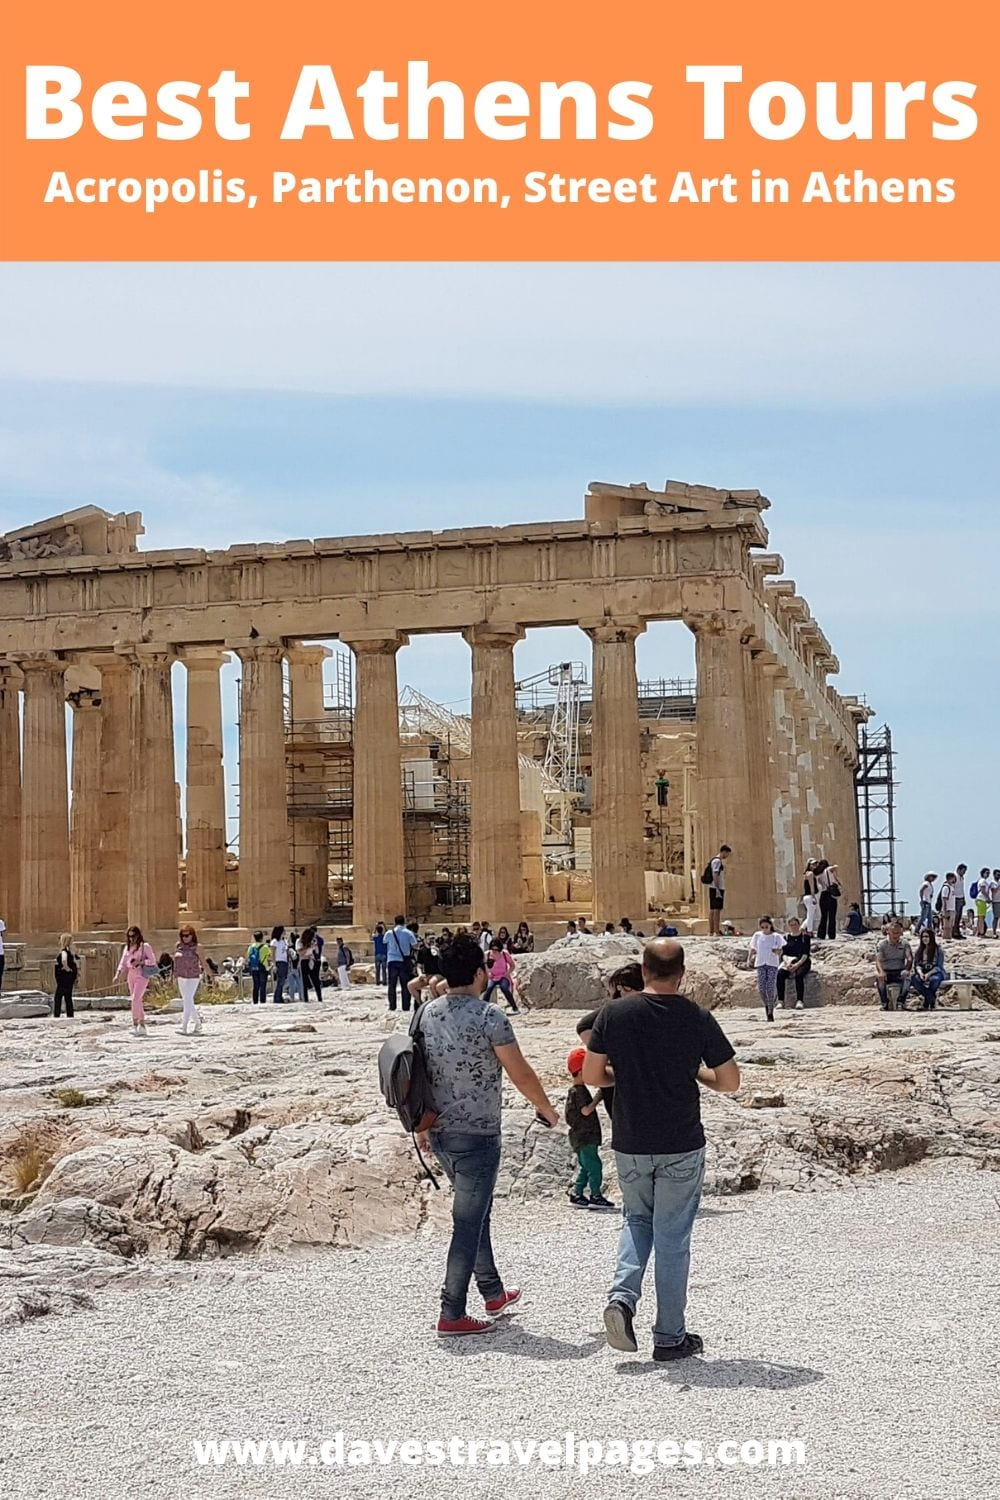 Best Athens tours of the Acropolis, ancient sites, street art and more